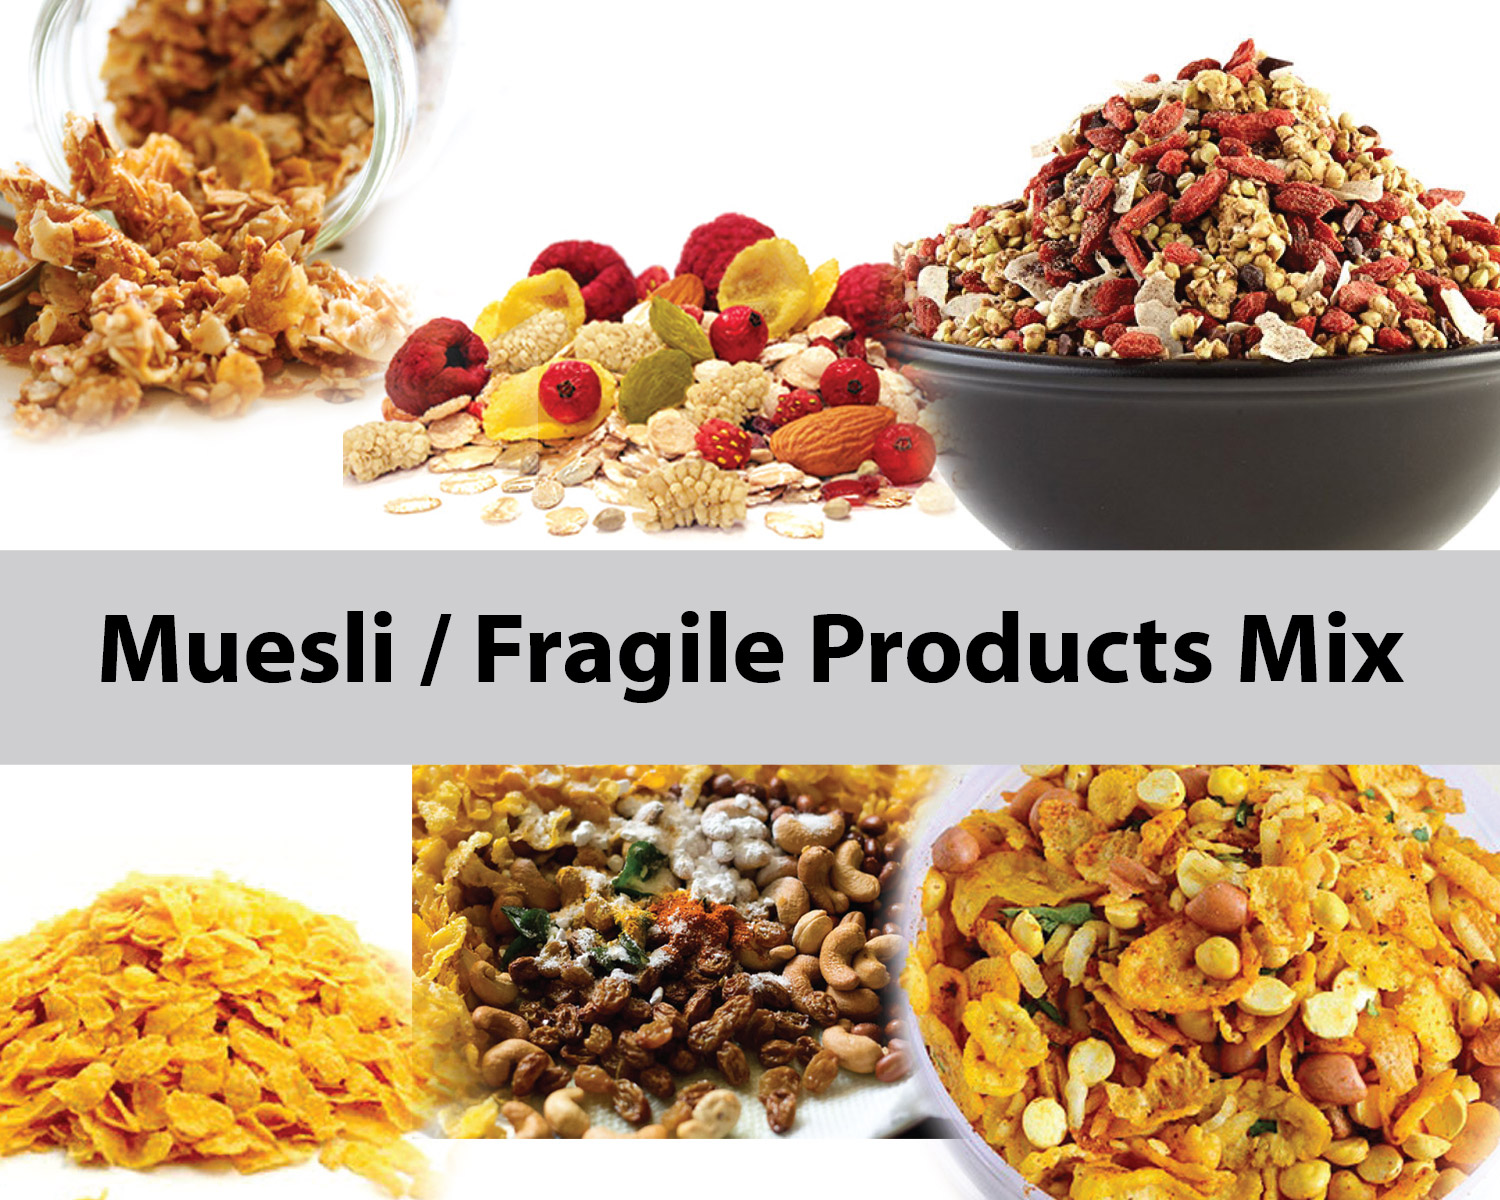 Mixer for Muesli